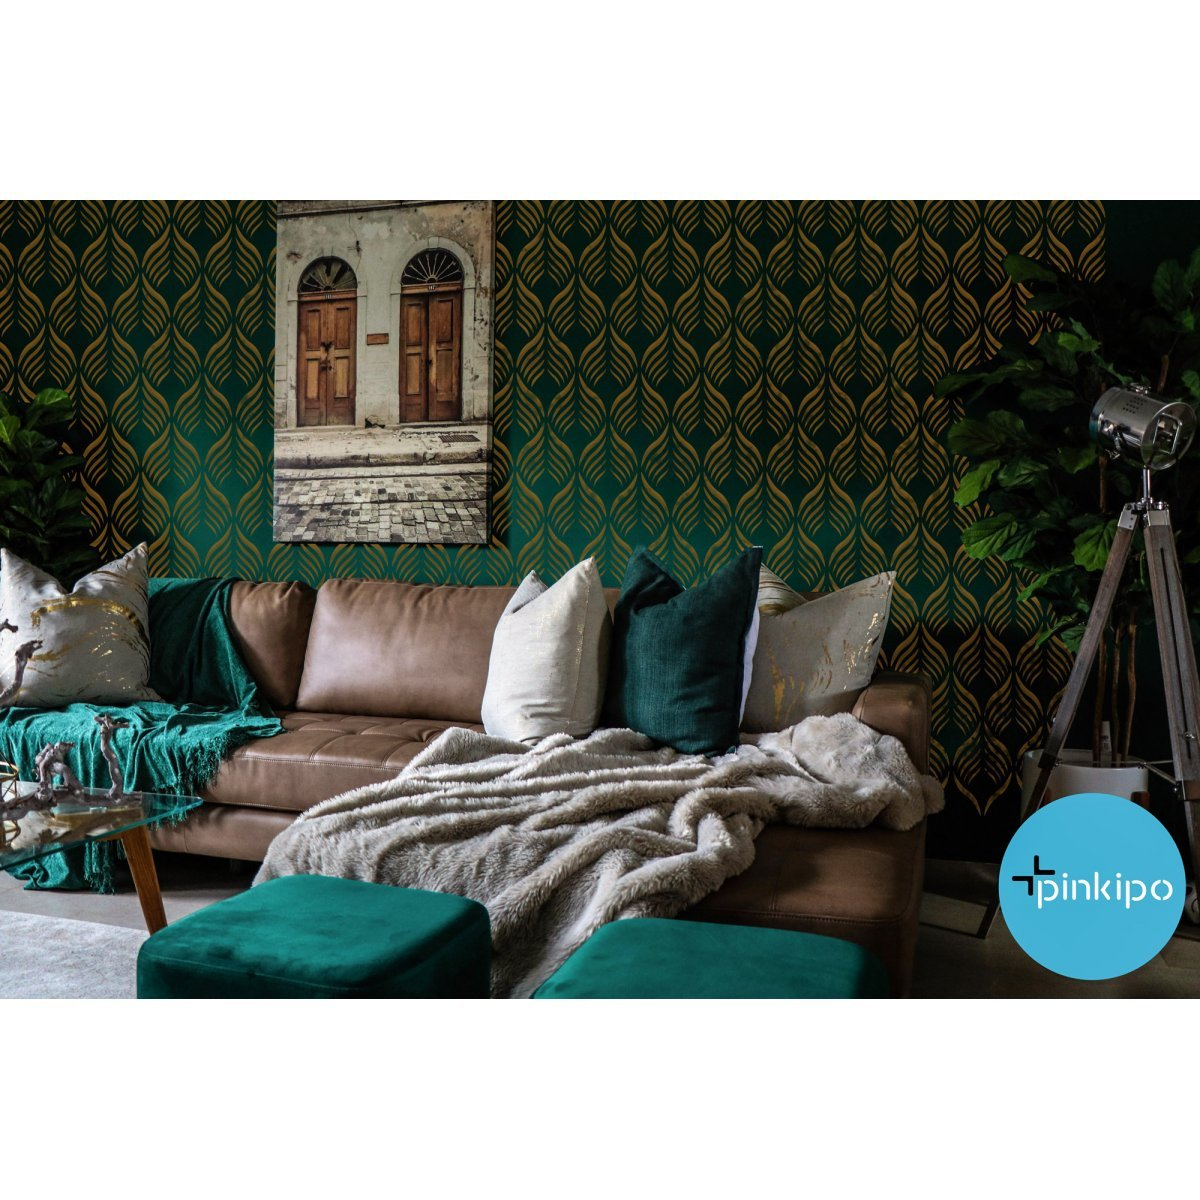 FIRE OF ANATOLIA / Reusable Allover Large Wall Stencils for Painting